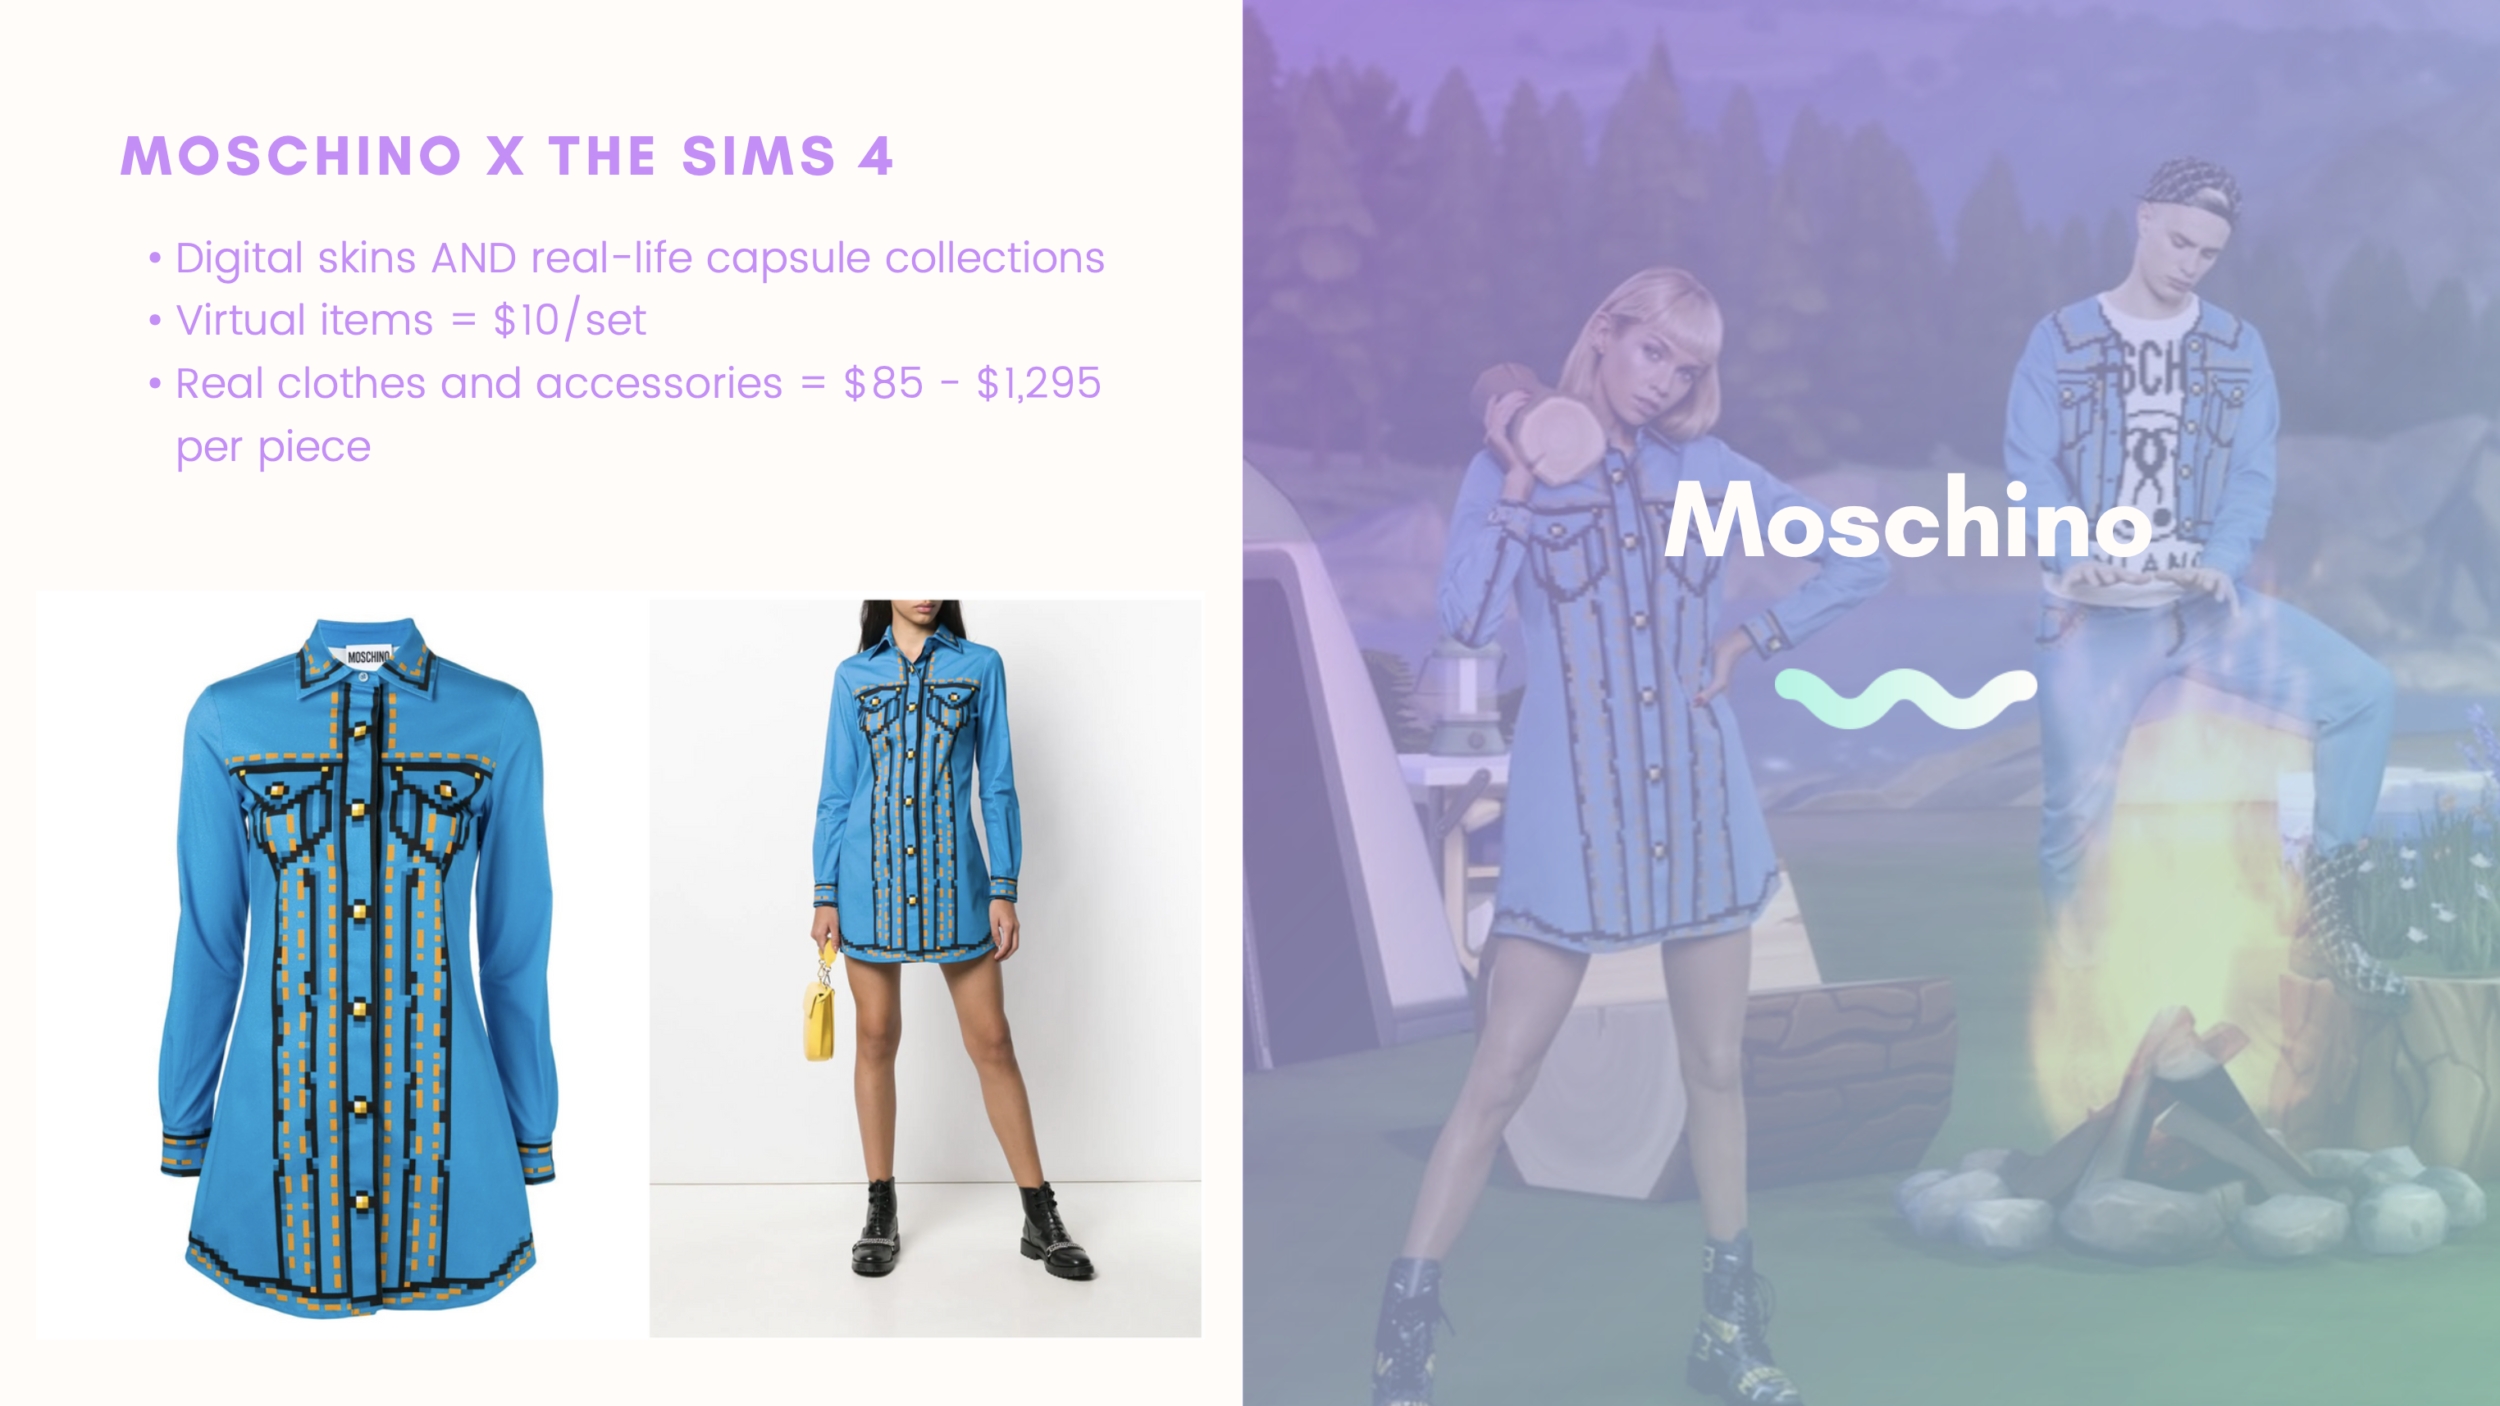 A t-shirt from Moschino's collaboration with the Sims